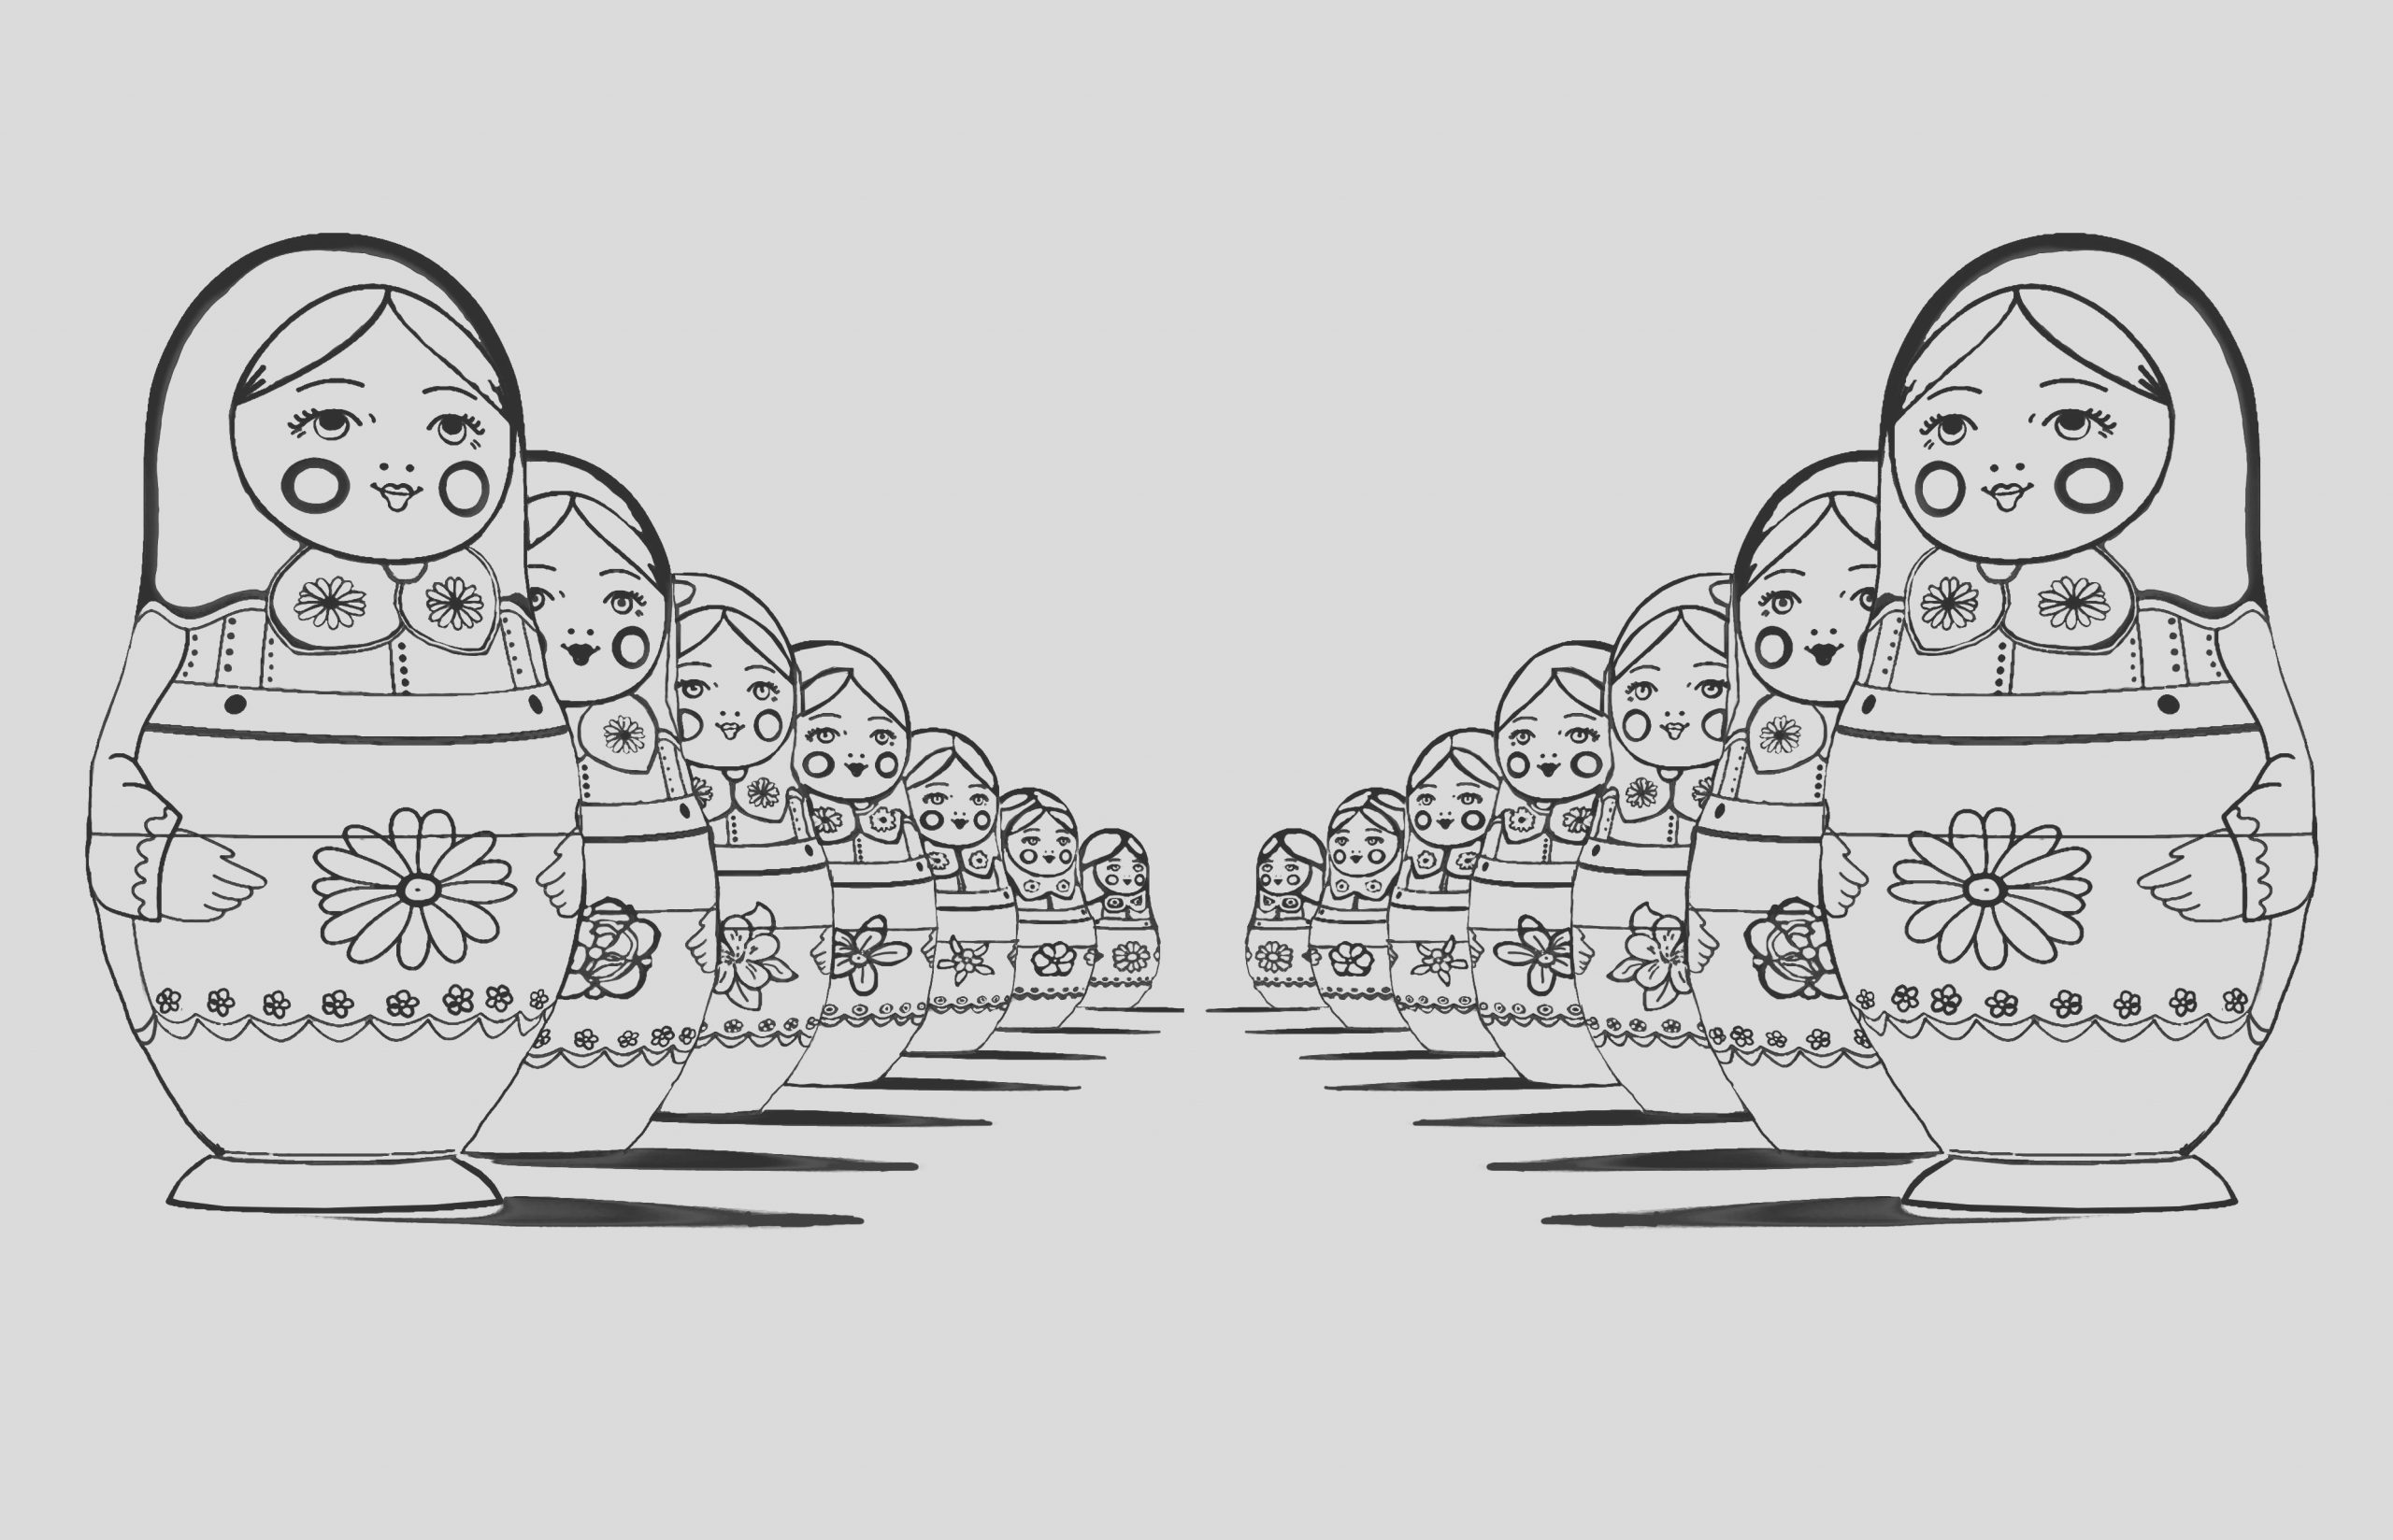 image=russian dolls coloring page adult russian dolls perspective double 1